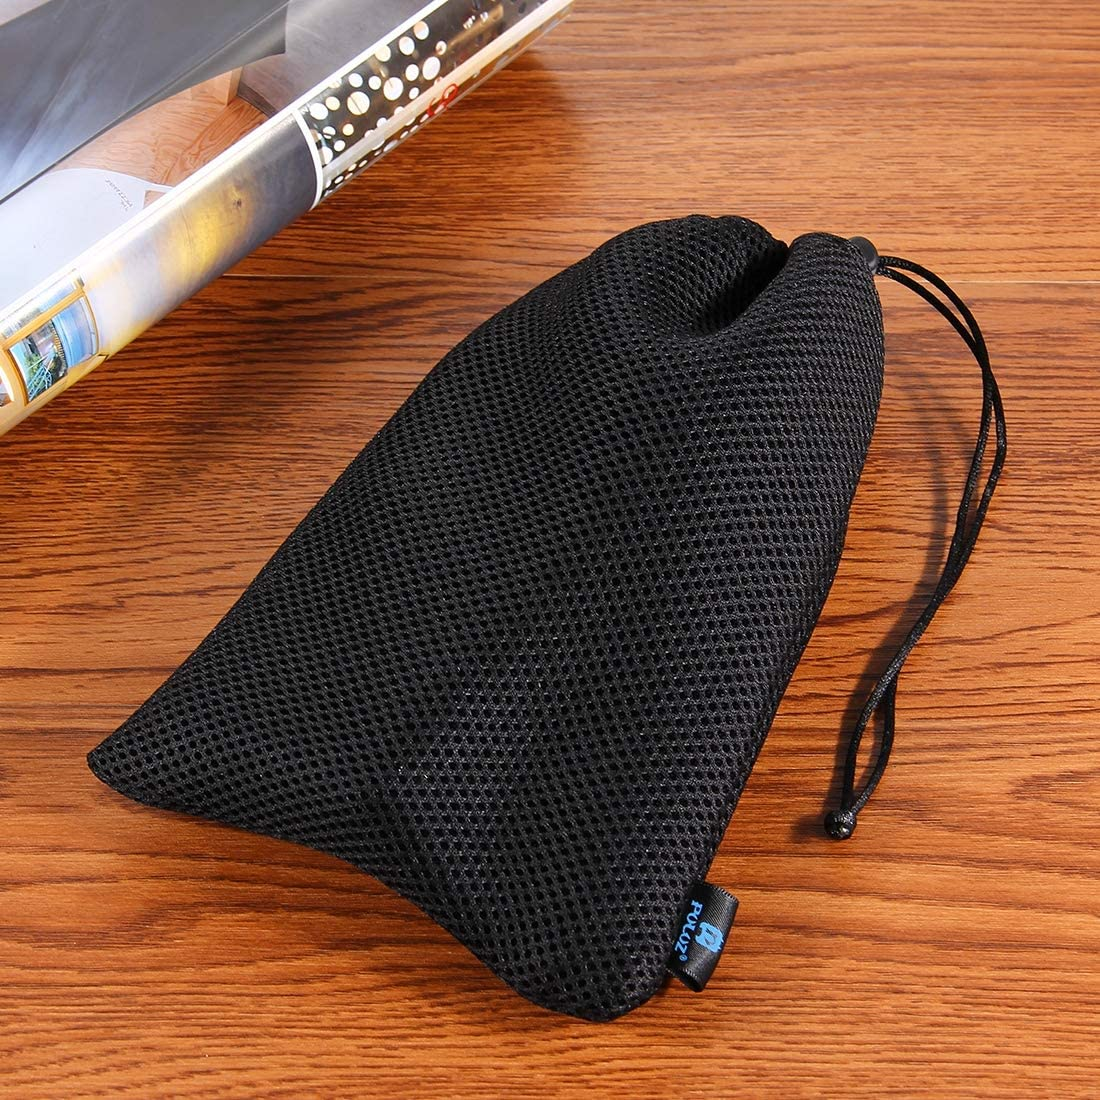 Black Durable Size: 21.5cm x 15.5cm GuiPing Nylon Mesh Storage Bag with Stay Cord for GoPro New Hero //HERO6 //5//4 Session //4//3+ //3//2 //1 U6000 and Other Sport Cameras Accessories Color : Grey